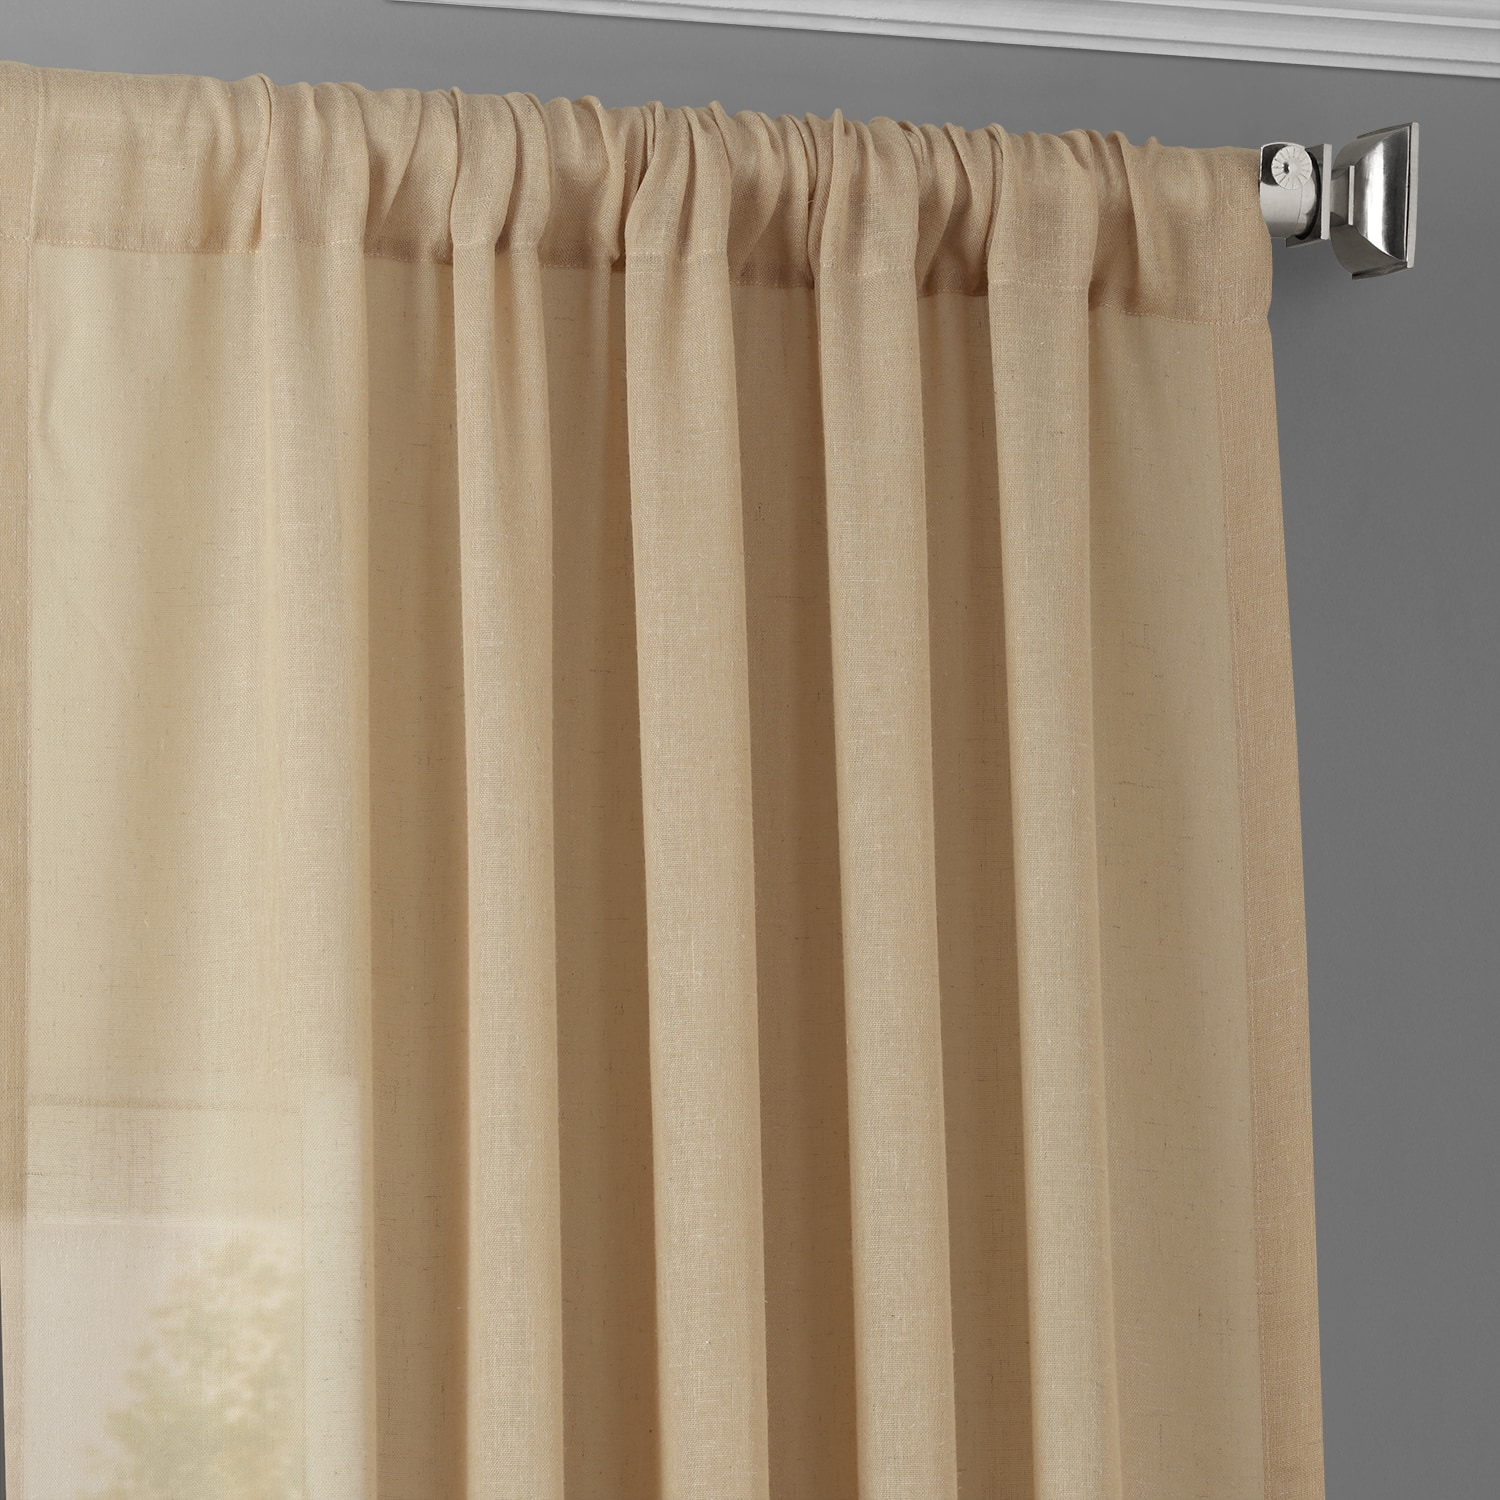 Raffia Tan Faux Linen Sheer Curtain